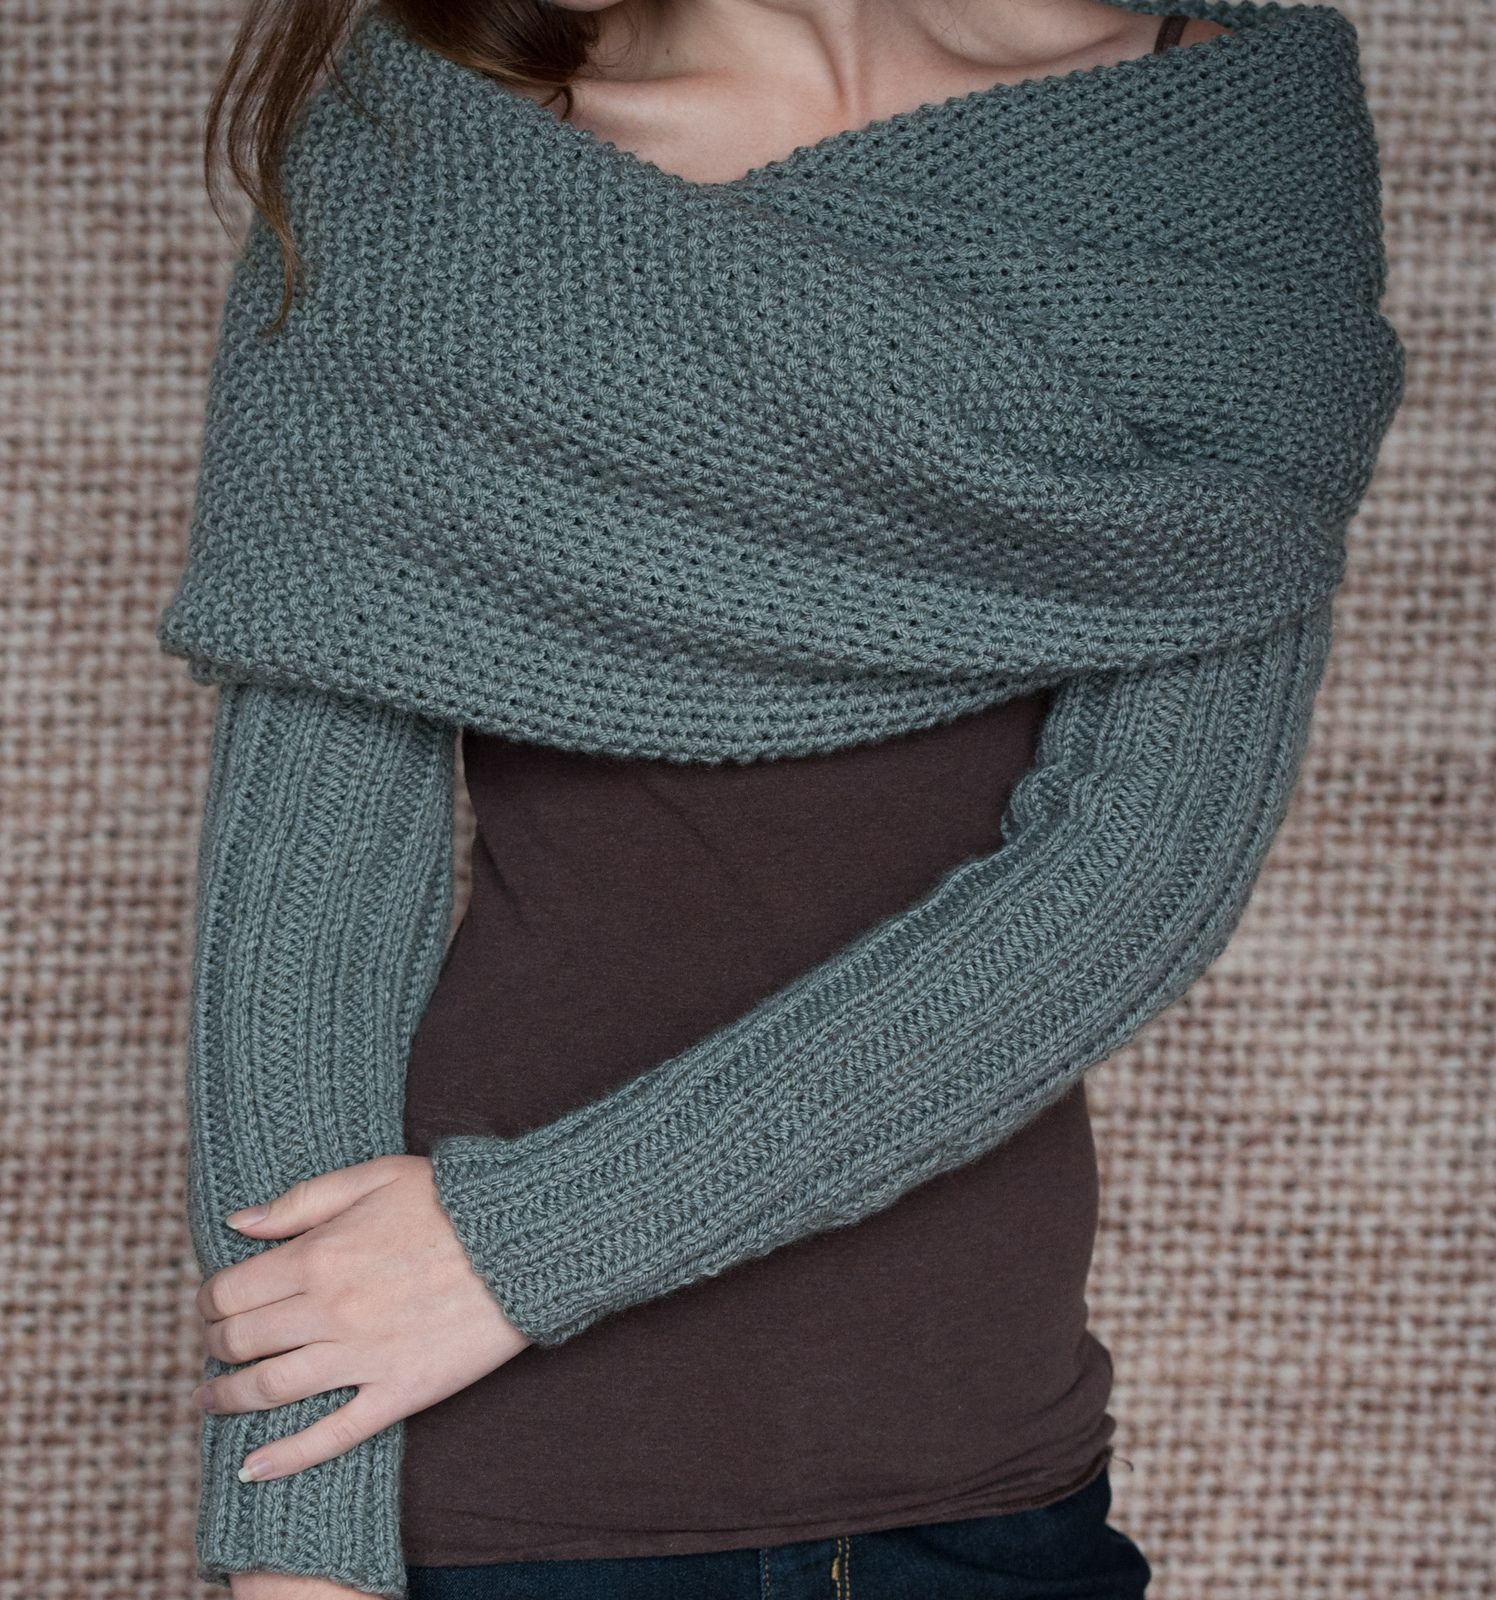 Ravelry: Sleeve Scarf Sweater Wrap by Lake House Knits | Craft Ideas ...